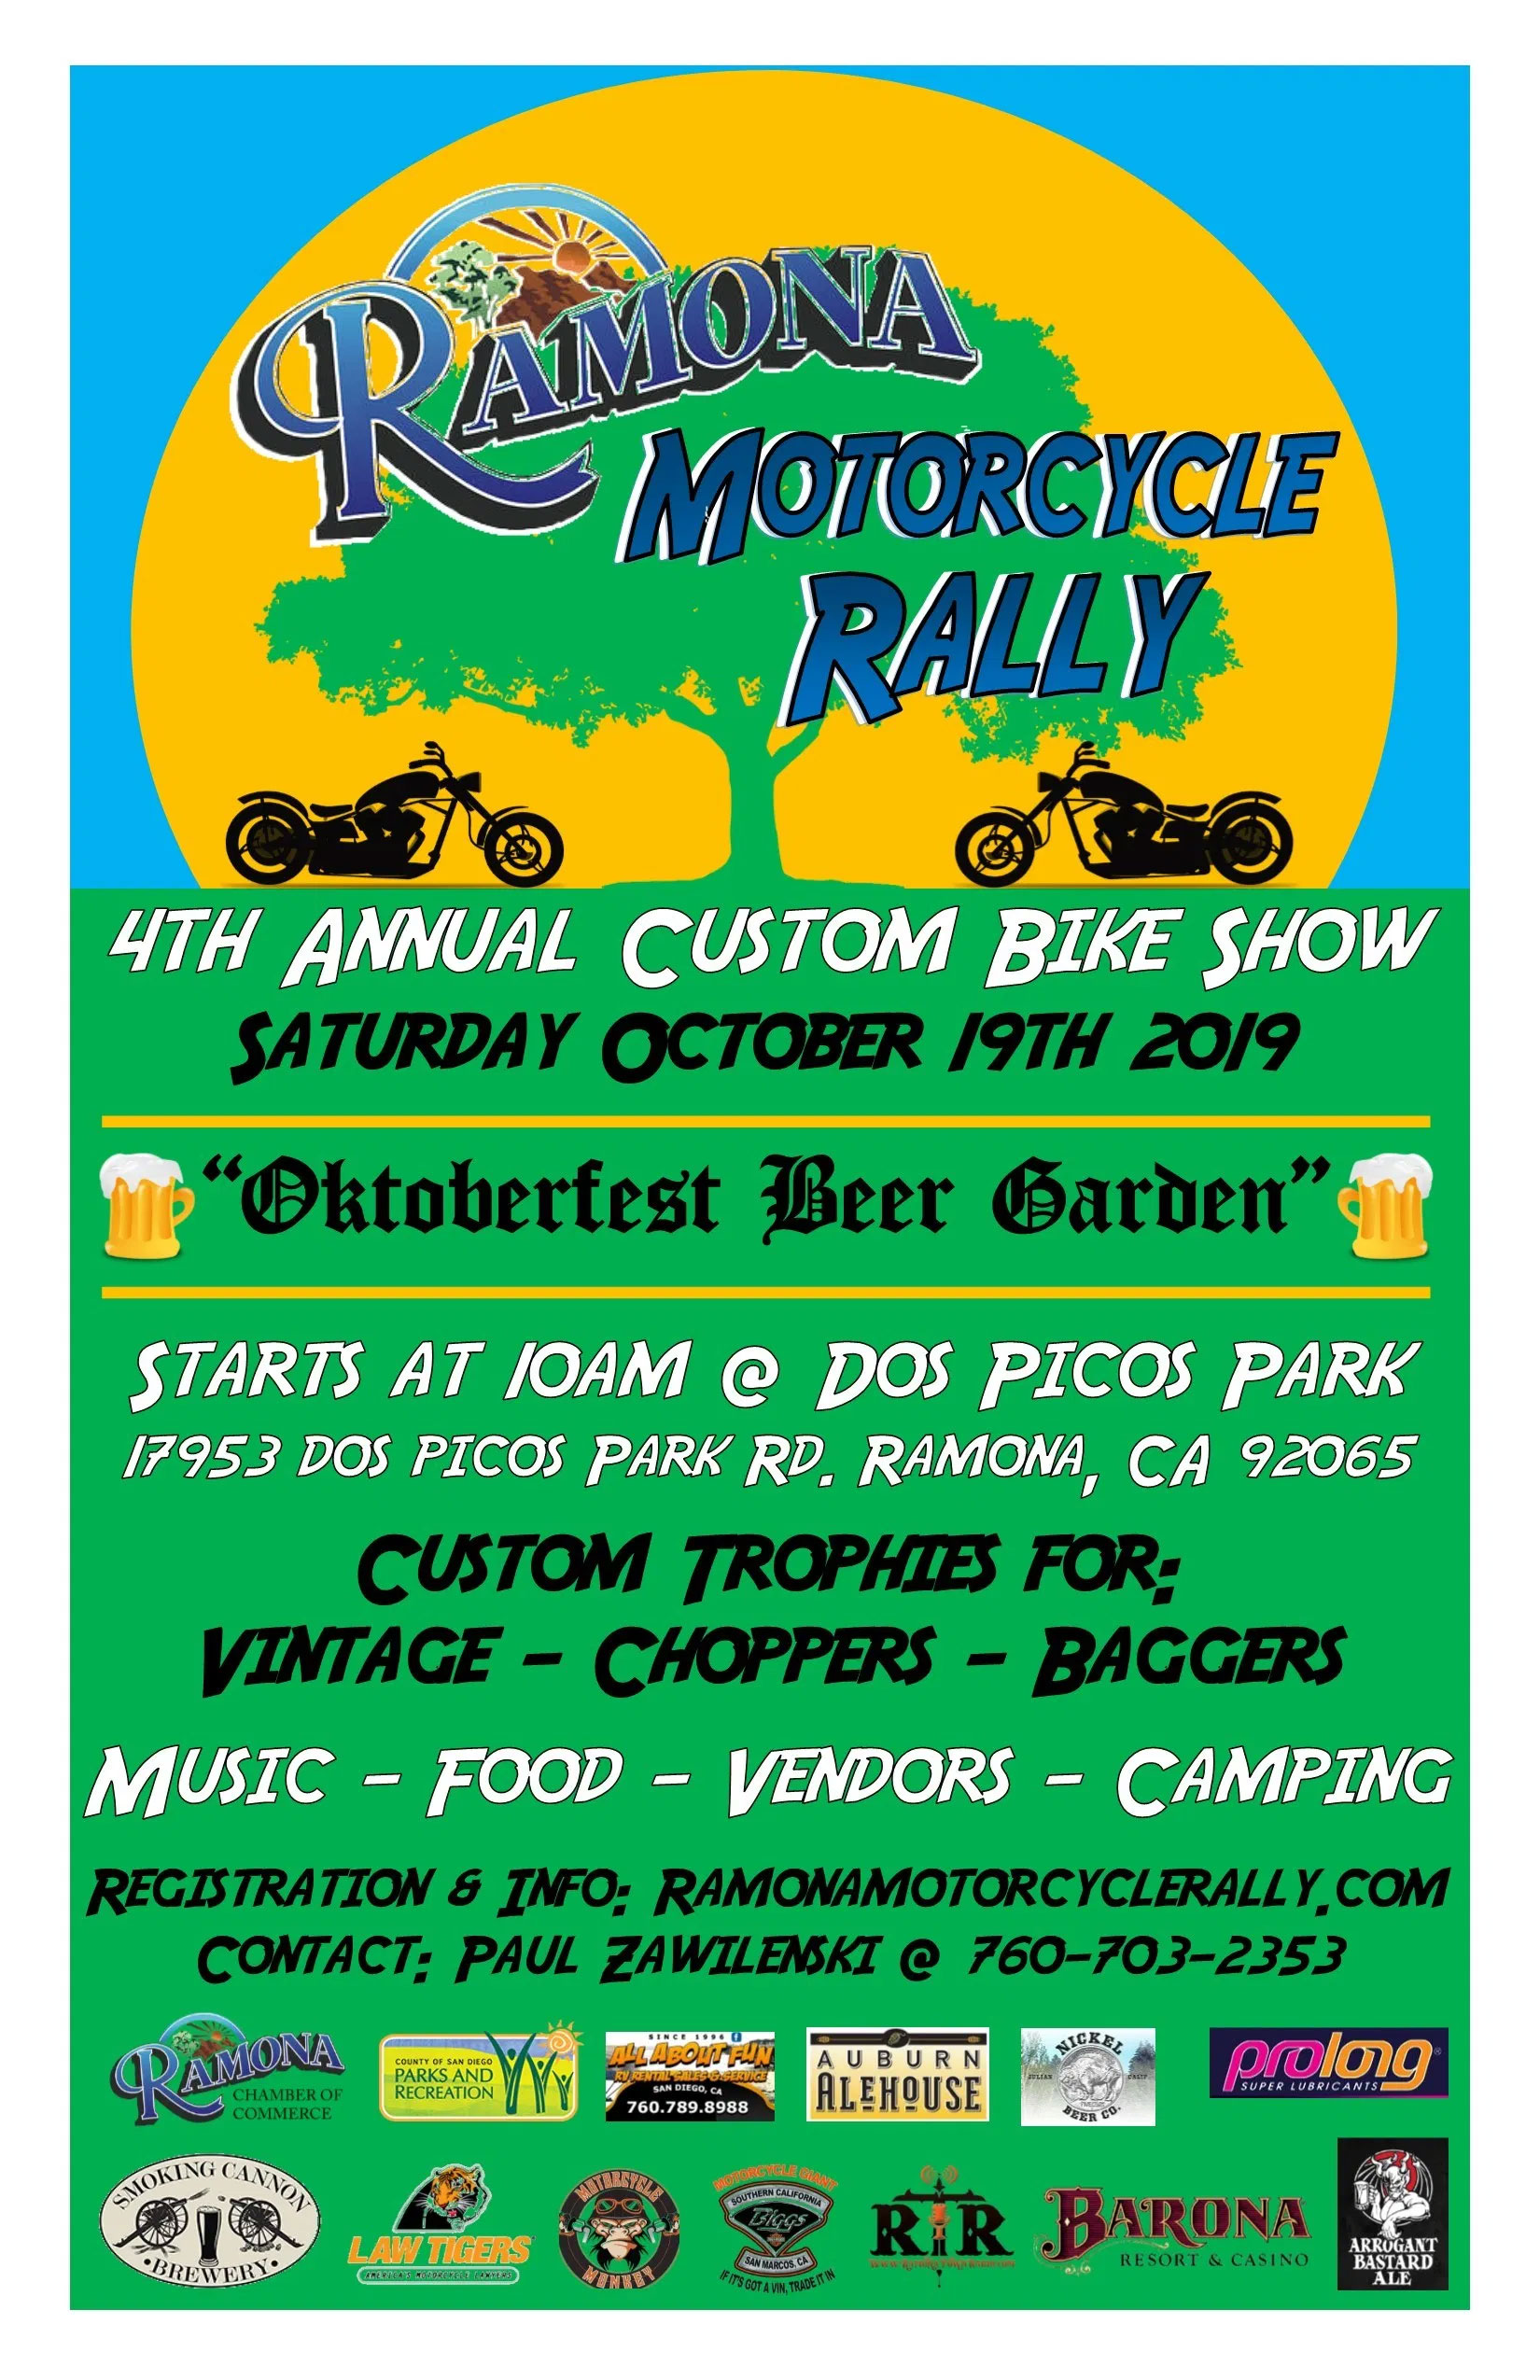 Romona Motorcycle Rally Ramona,CA